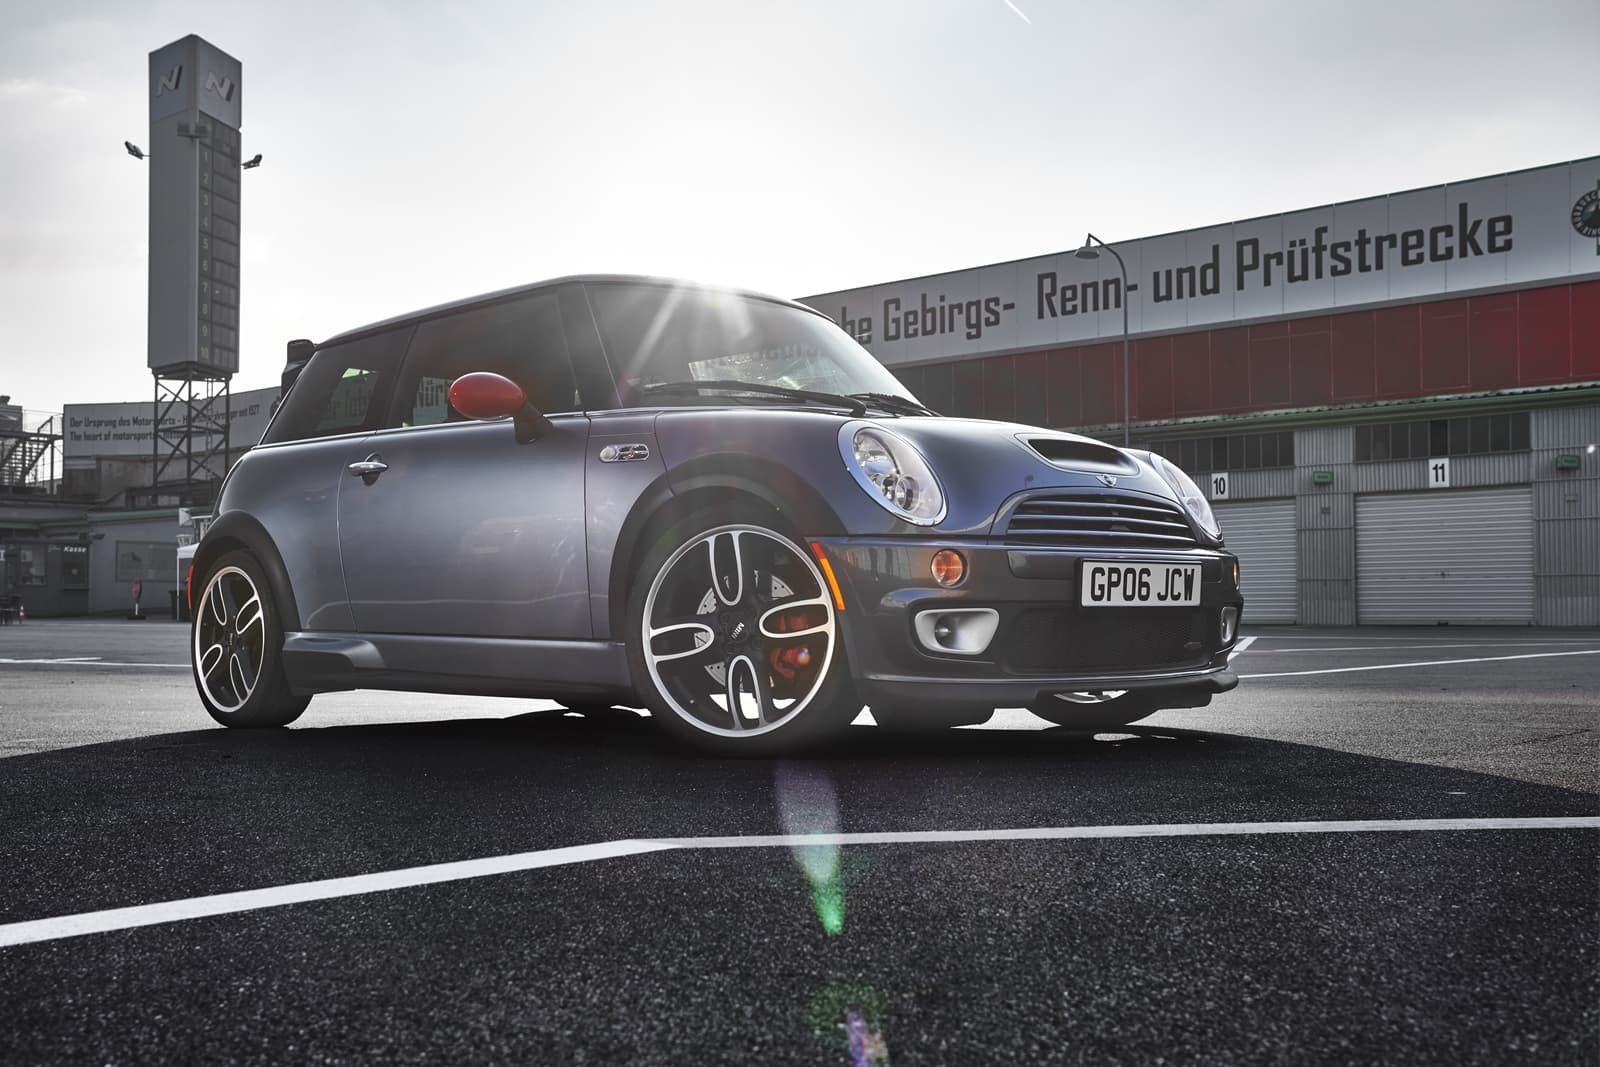 Mini John Cooper Works Gp 2020 0920 004